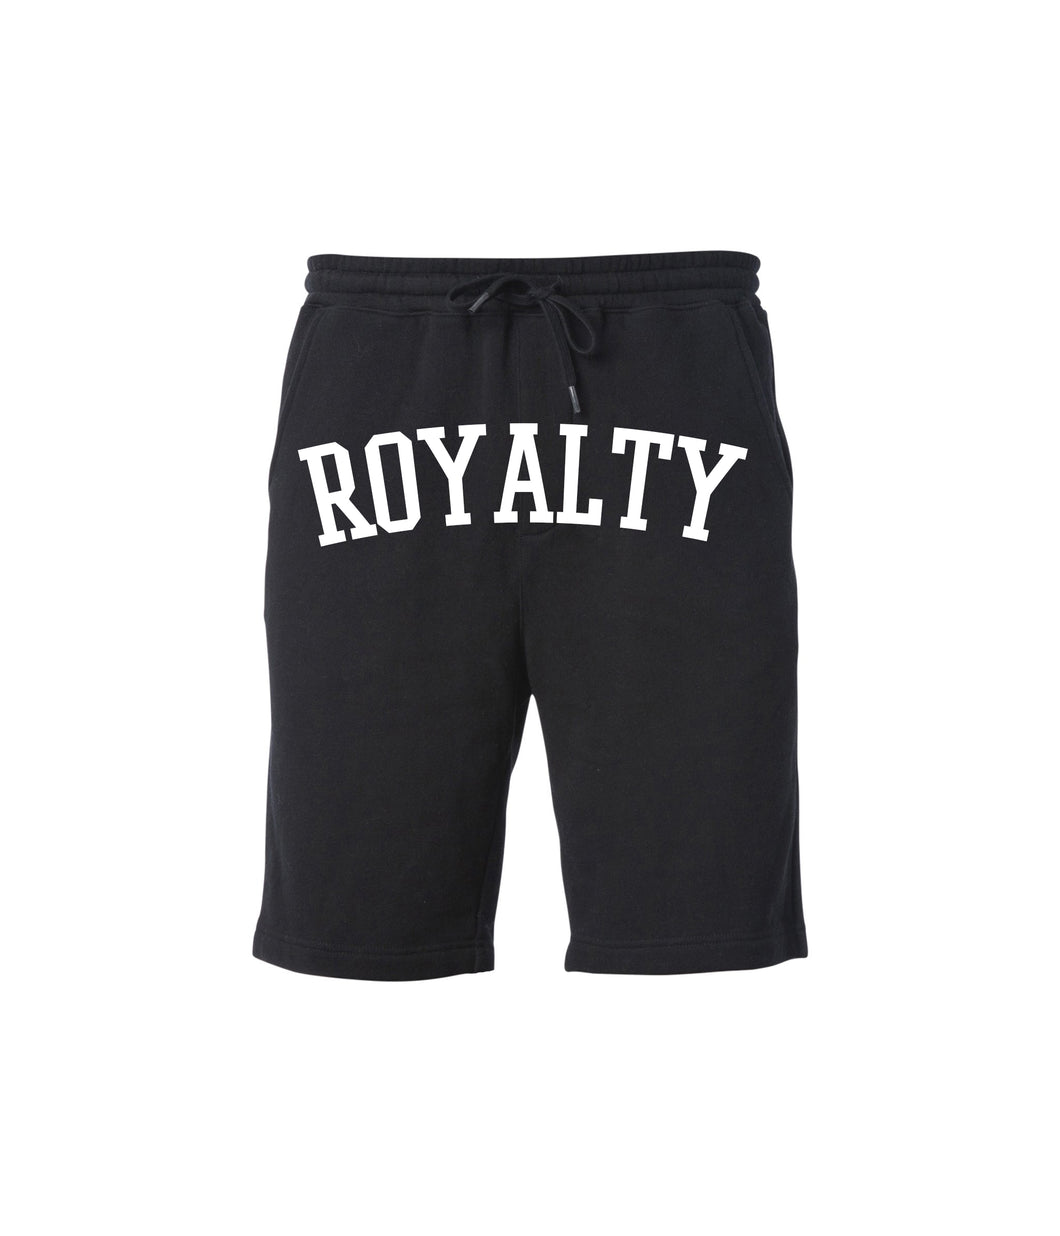 Vegas Royalty 'ROYALTY' Unisex Fleece Shorts